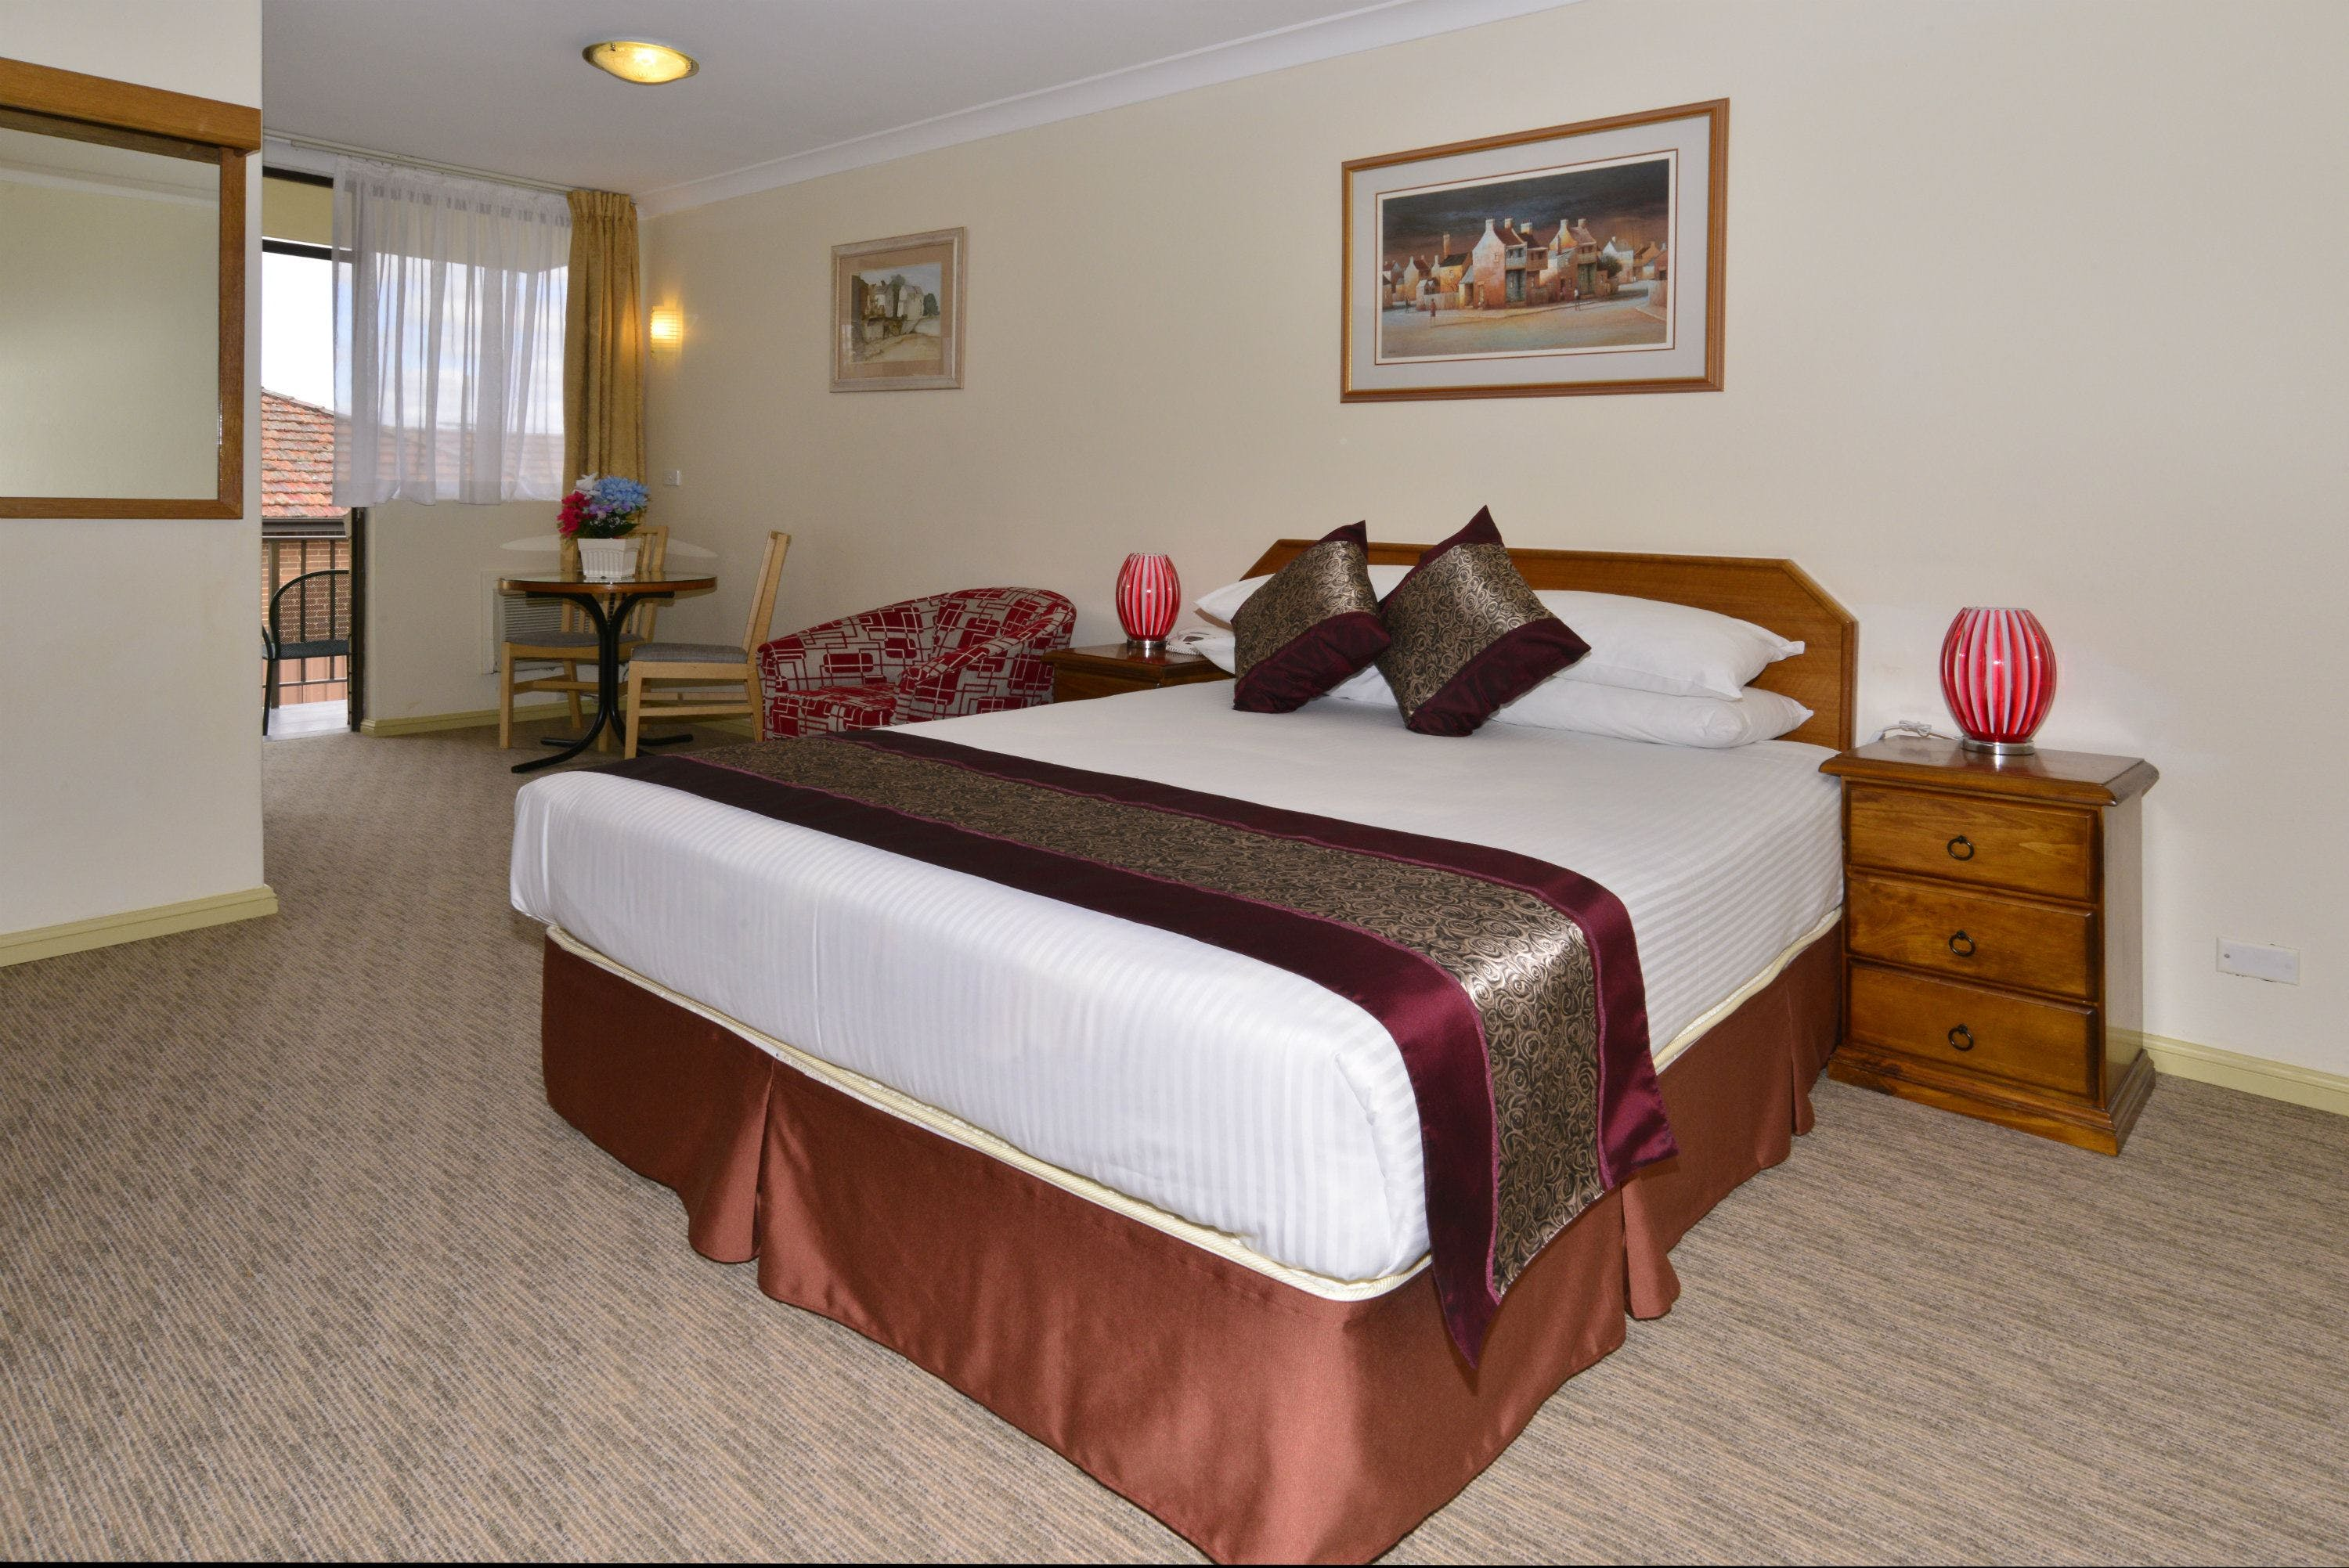 Metro Inn Ryde - Accommodation Broken Hill